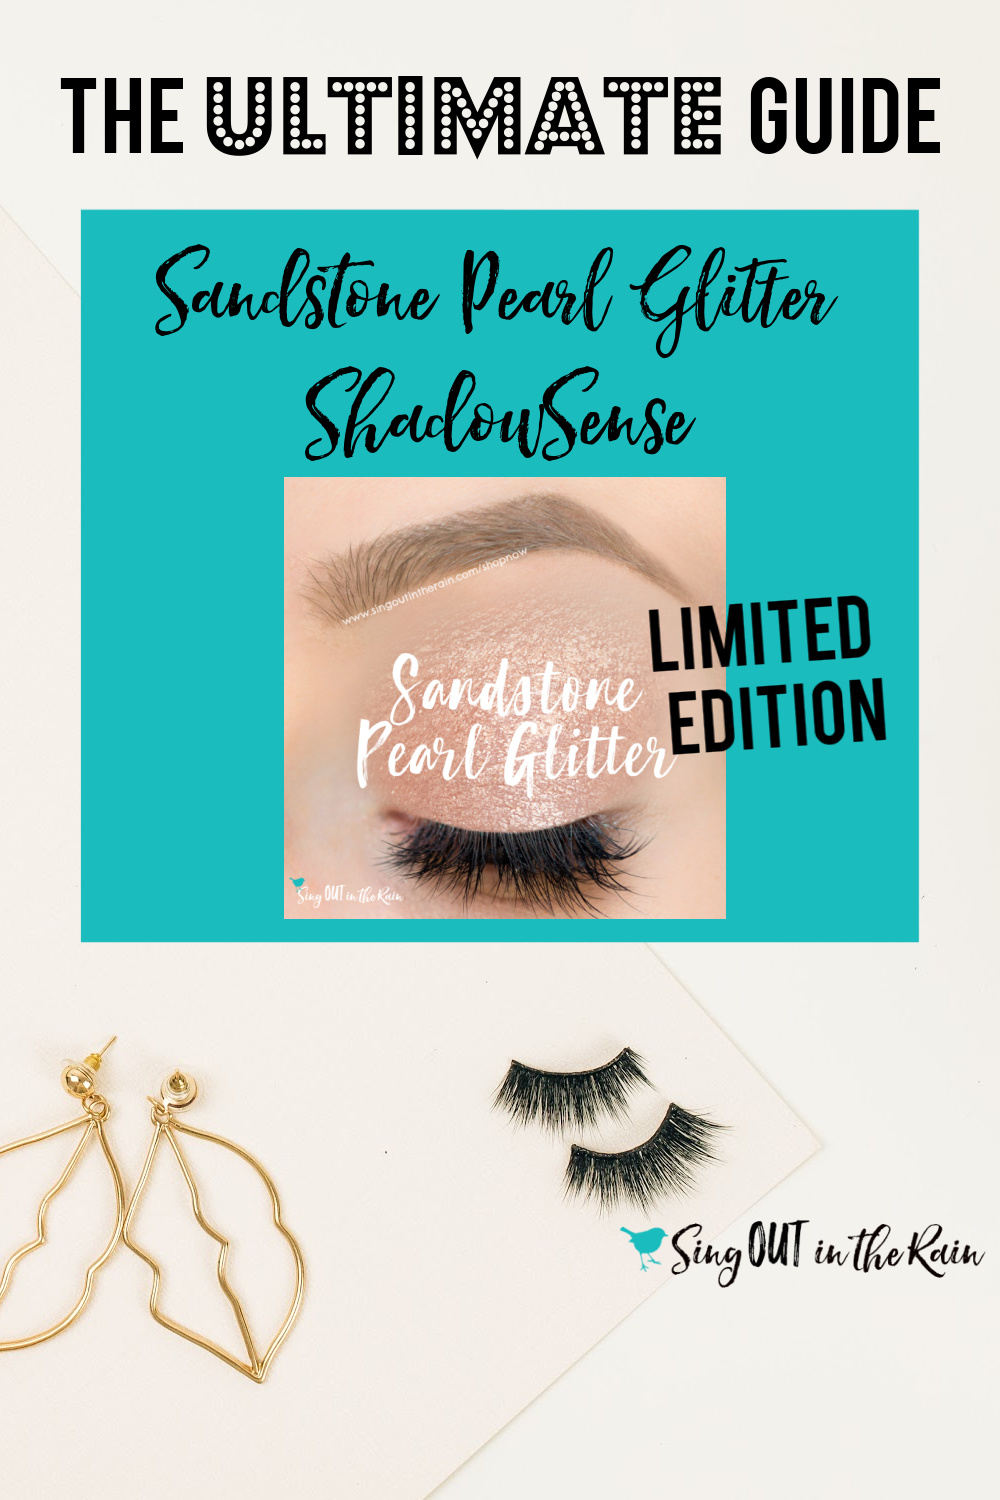 The Ultimate Guide to Sandstone Pearl Glitter ShadowSense